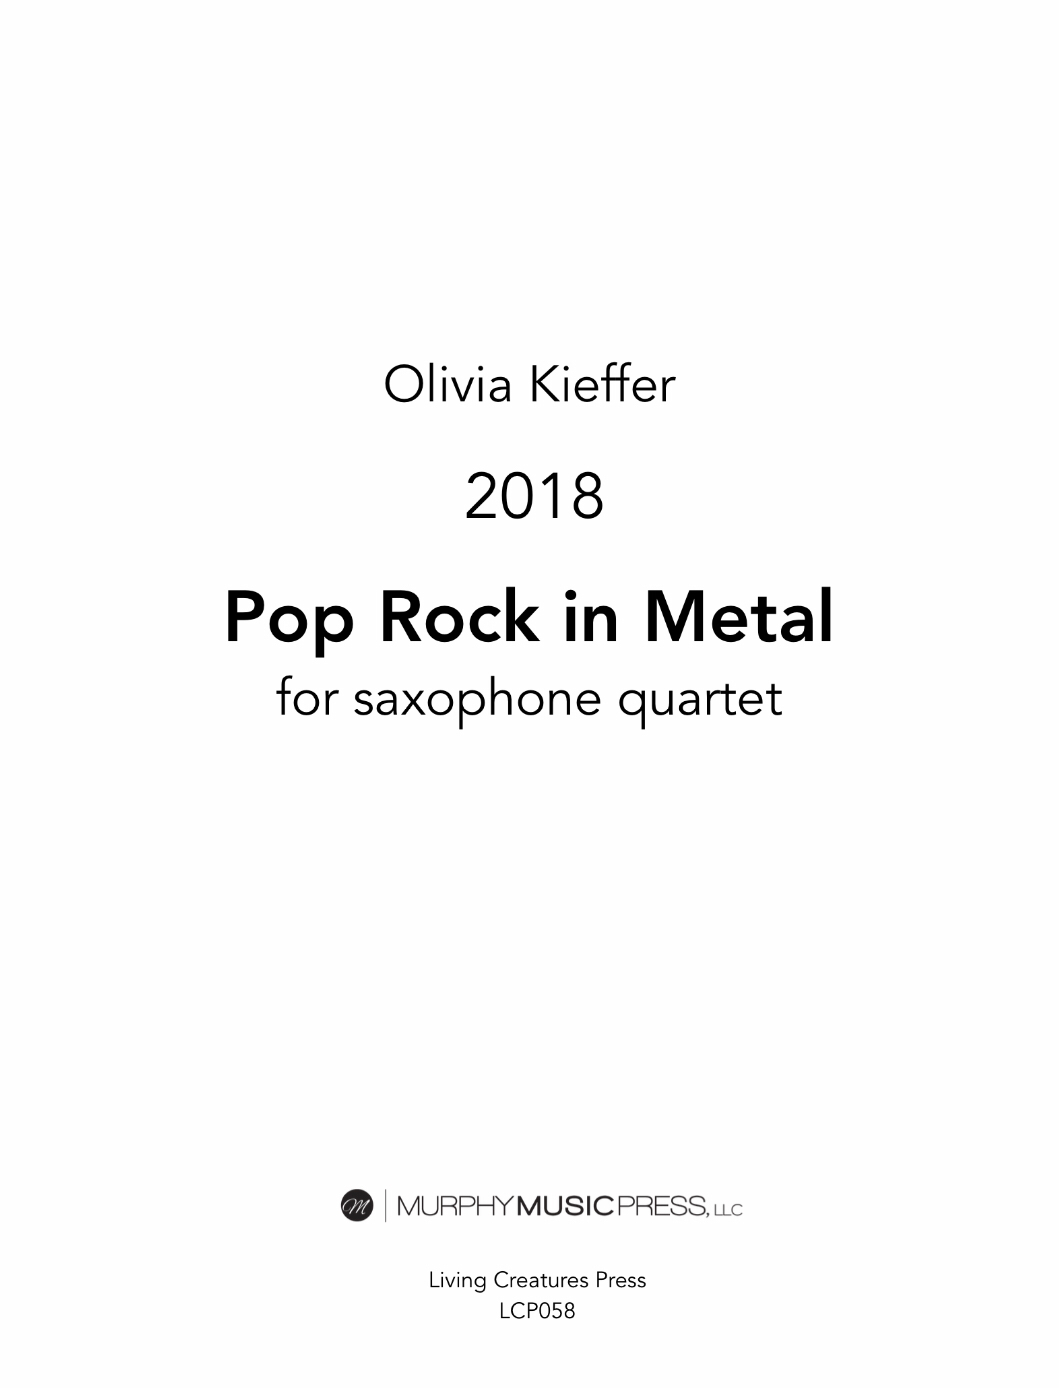 Pop Rock In Metal by Olivia Kieffer